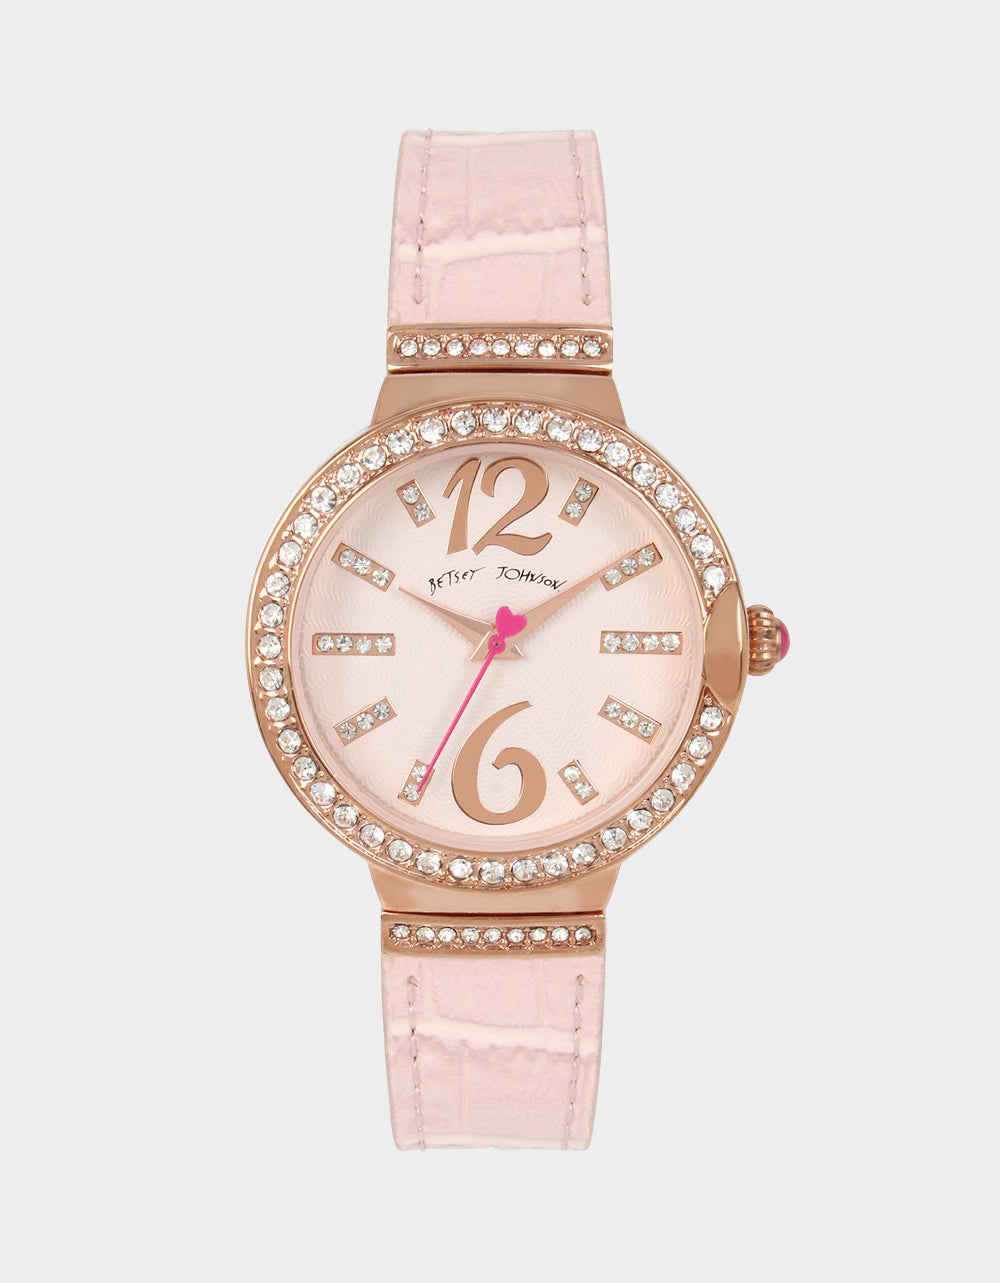 SPRING BREEZE TEXTURED WATCH PINK - JEWELRY - Betsey Johnson